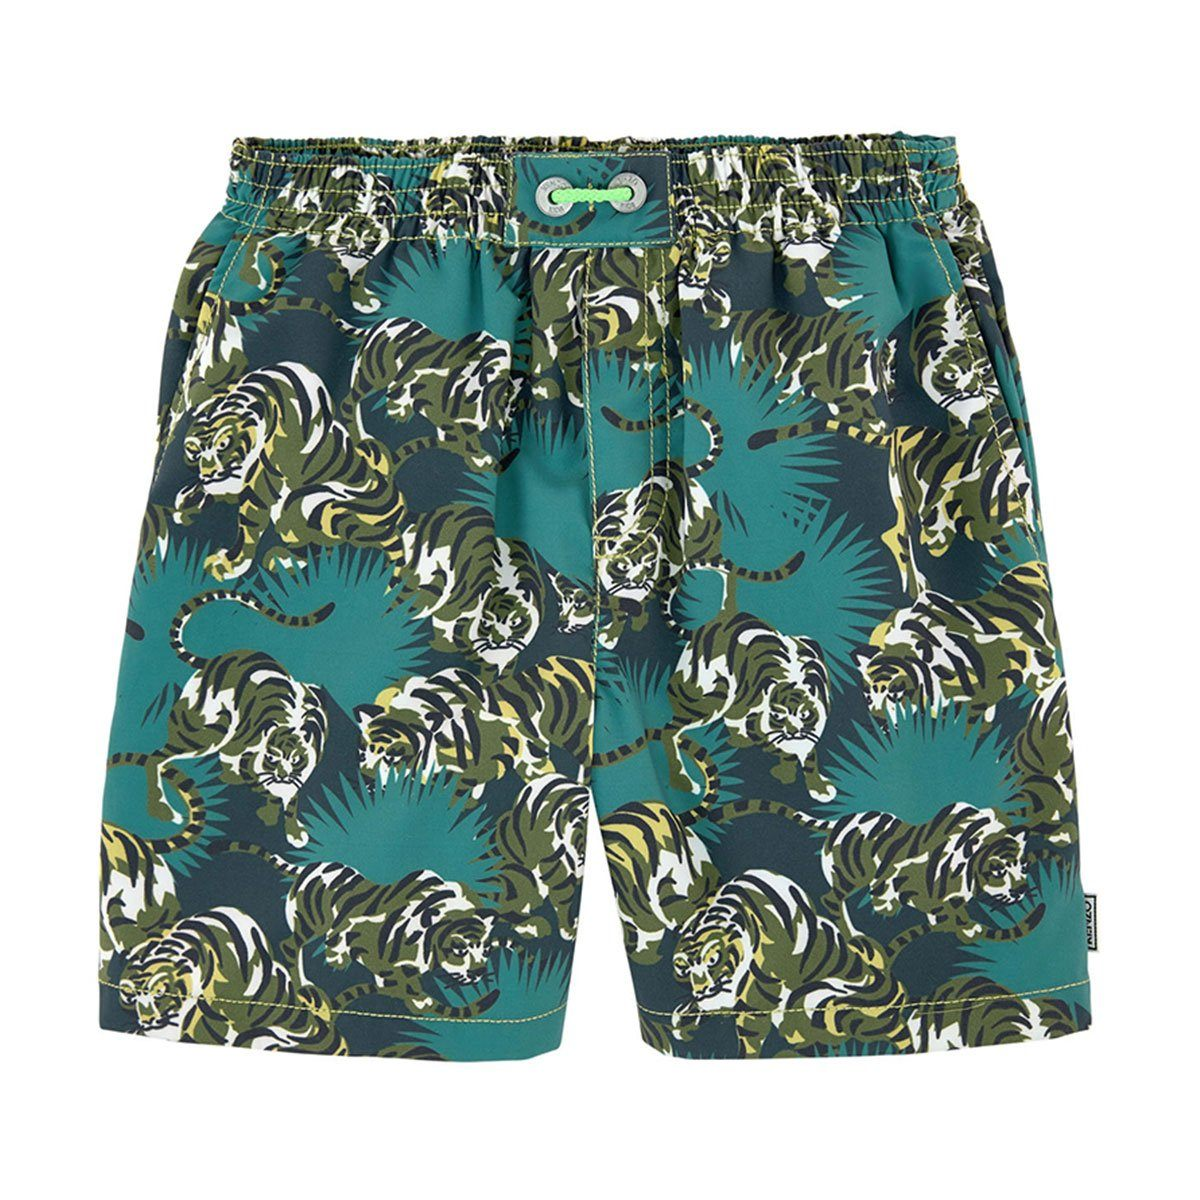 Kenzo - Bathing Trunk With Jungle Print For Boys, Green